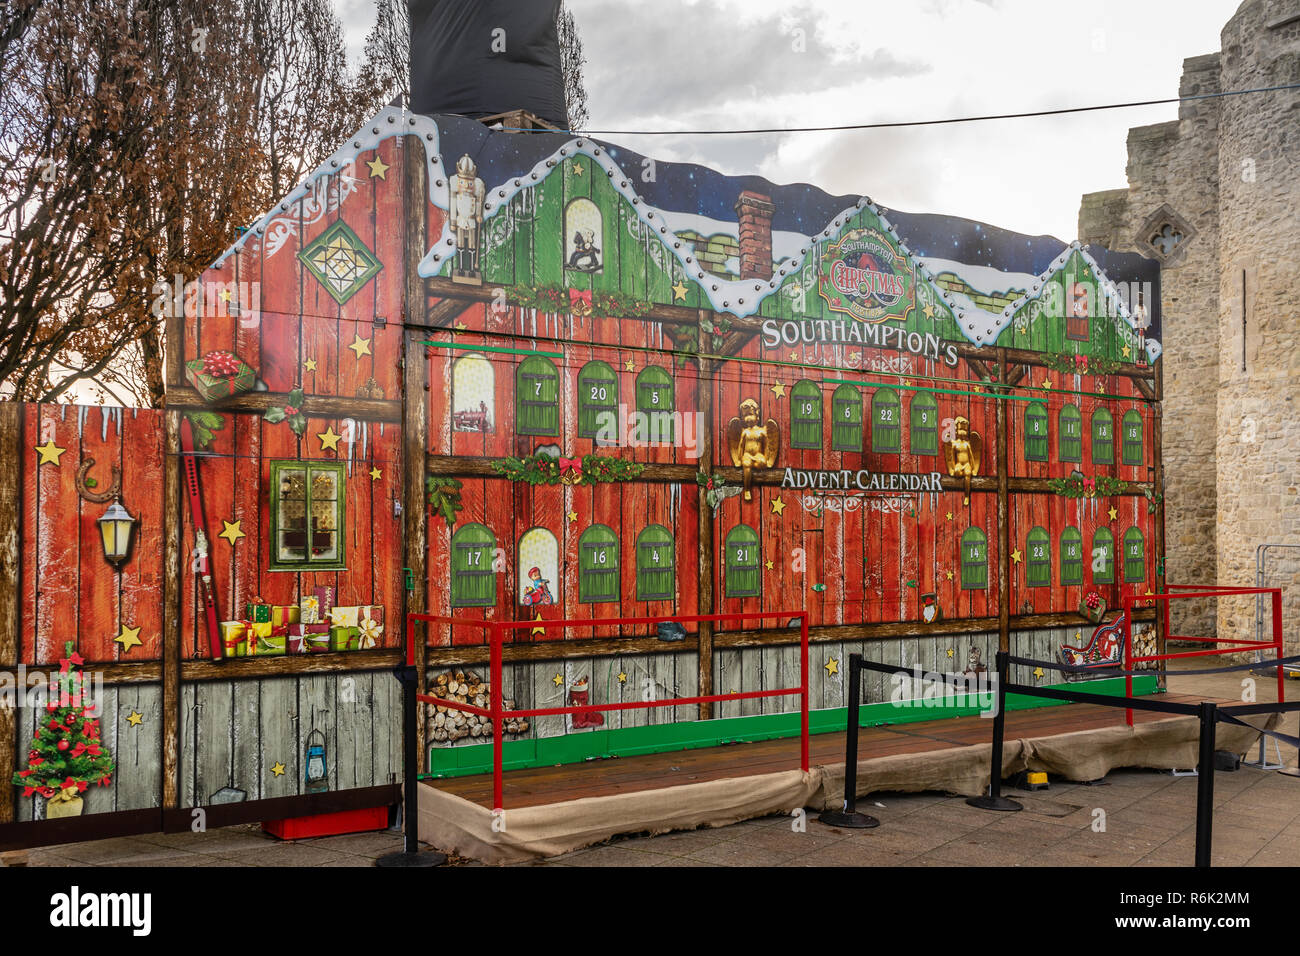 Tacky Christmas Decorations in Southampton - Southampton's Advent Calendar 2018 in the City Centre, Hampshire, England, UK - Stock Image